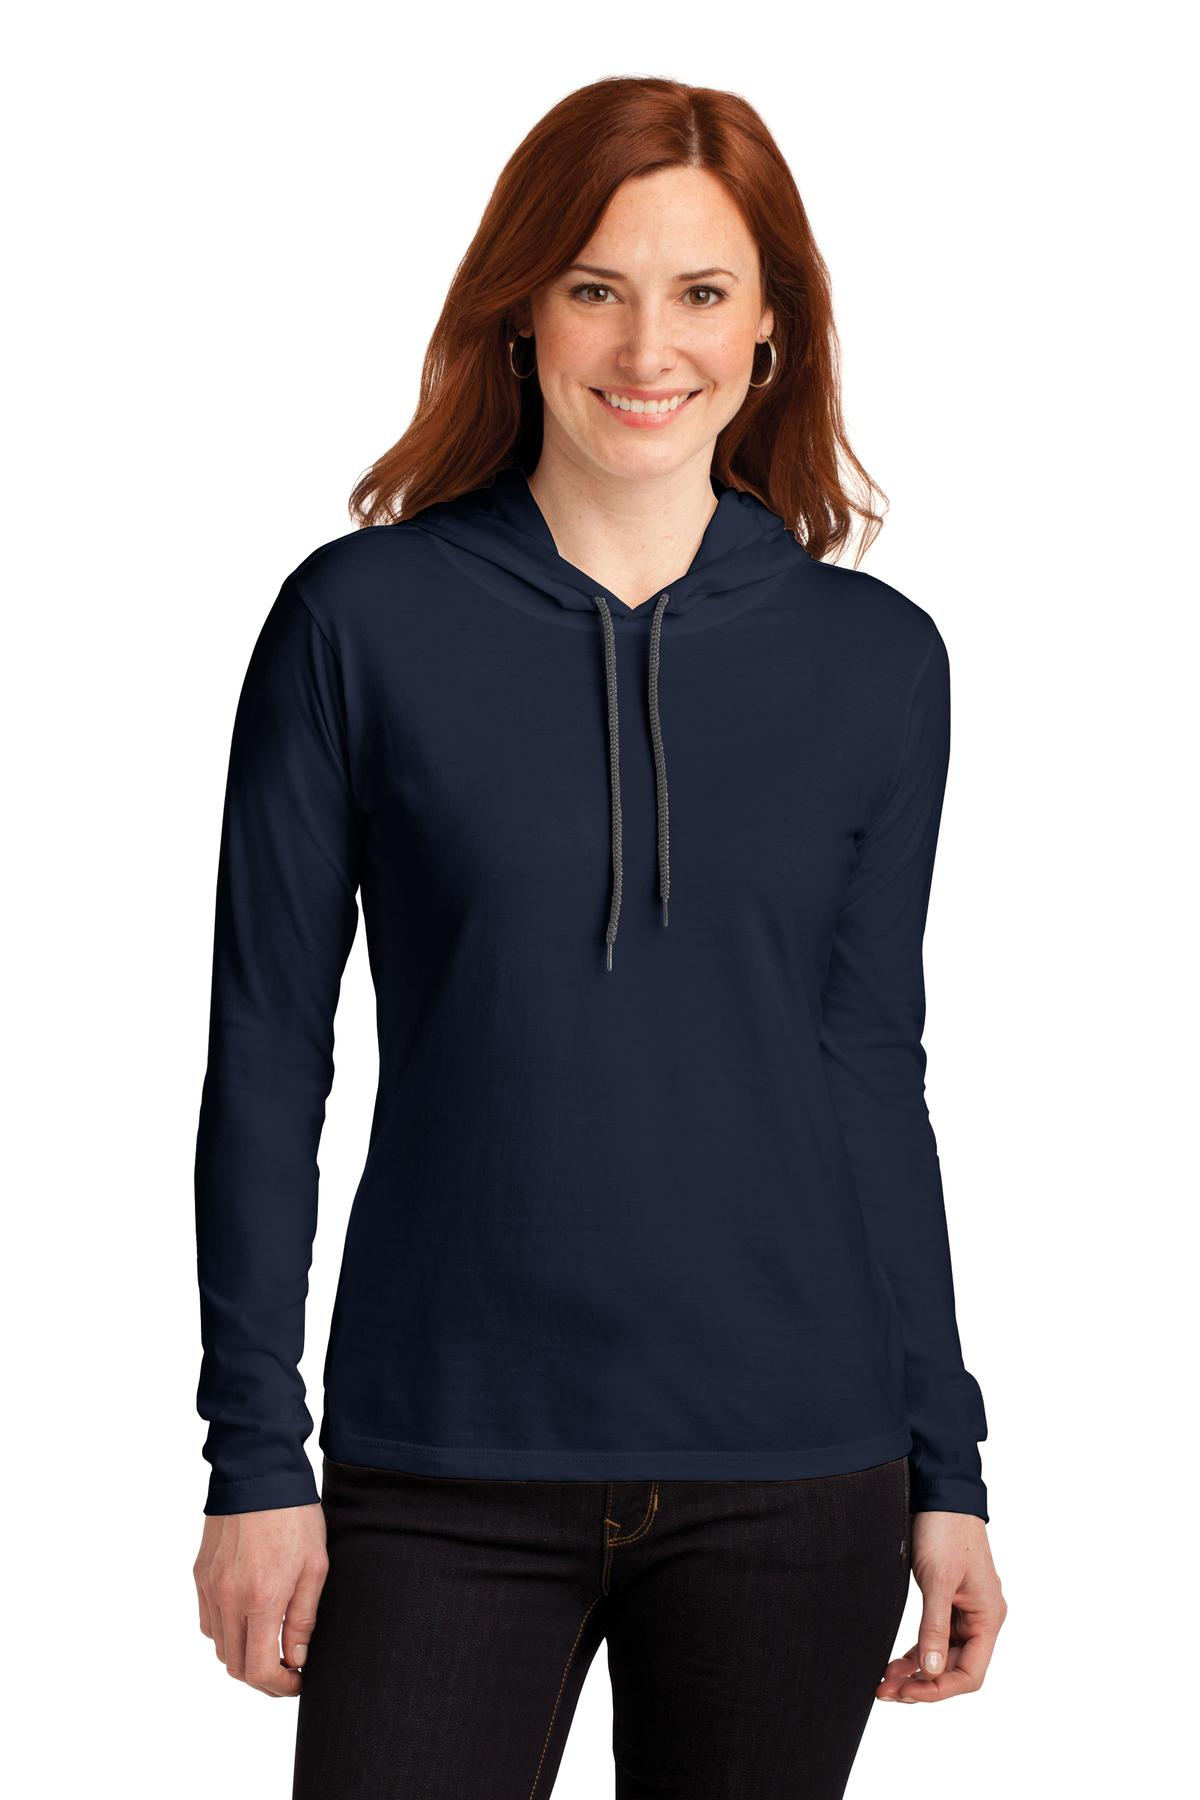 Anvil ®  Ladies 100% Combed Ring Spun Cotton Long Sleeve Hooded T-Shirt. 887L - Navy/ Dark Grey